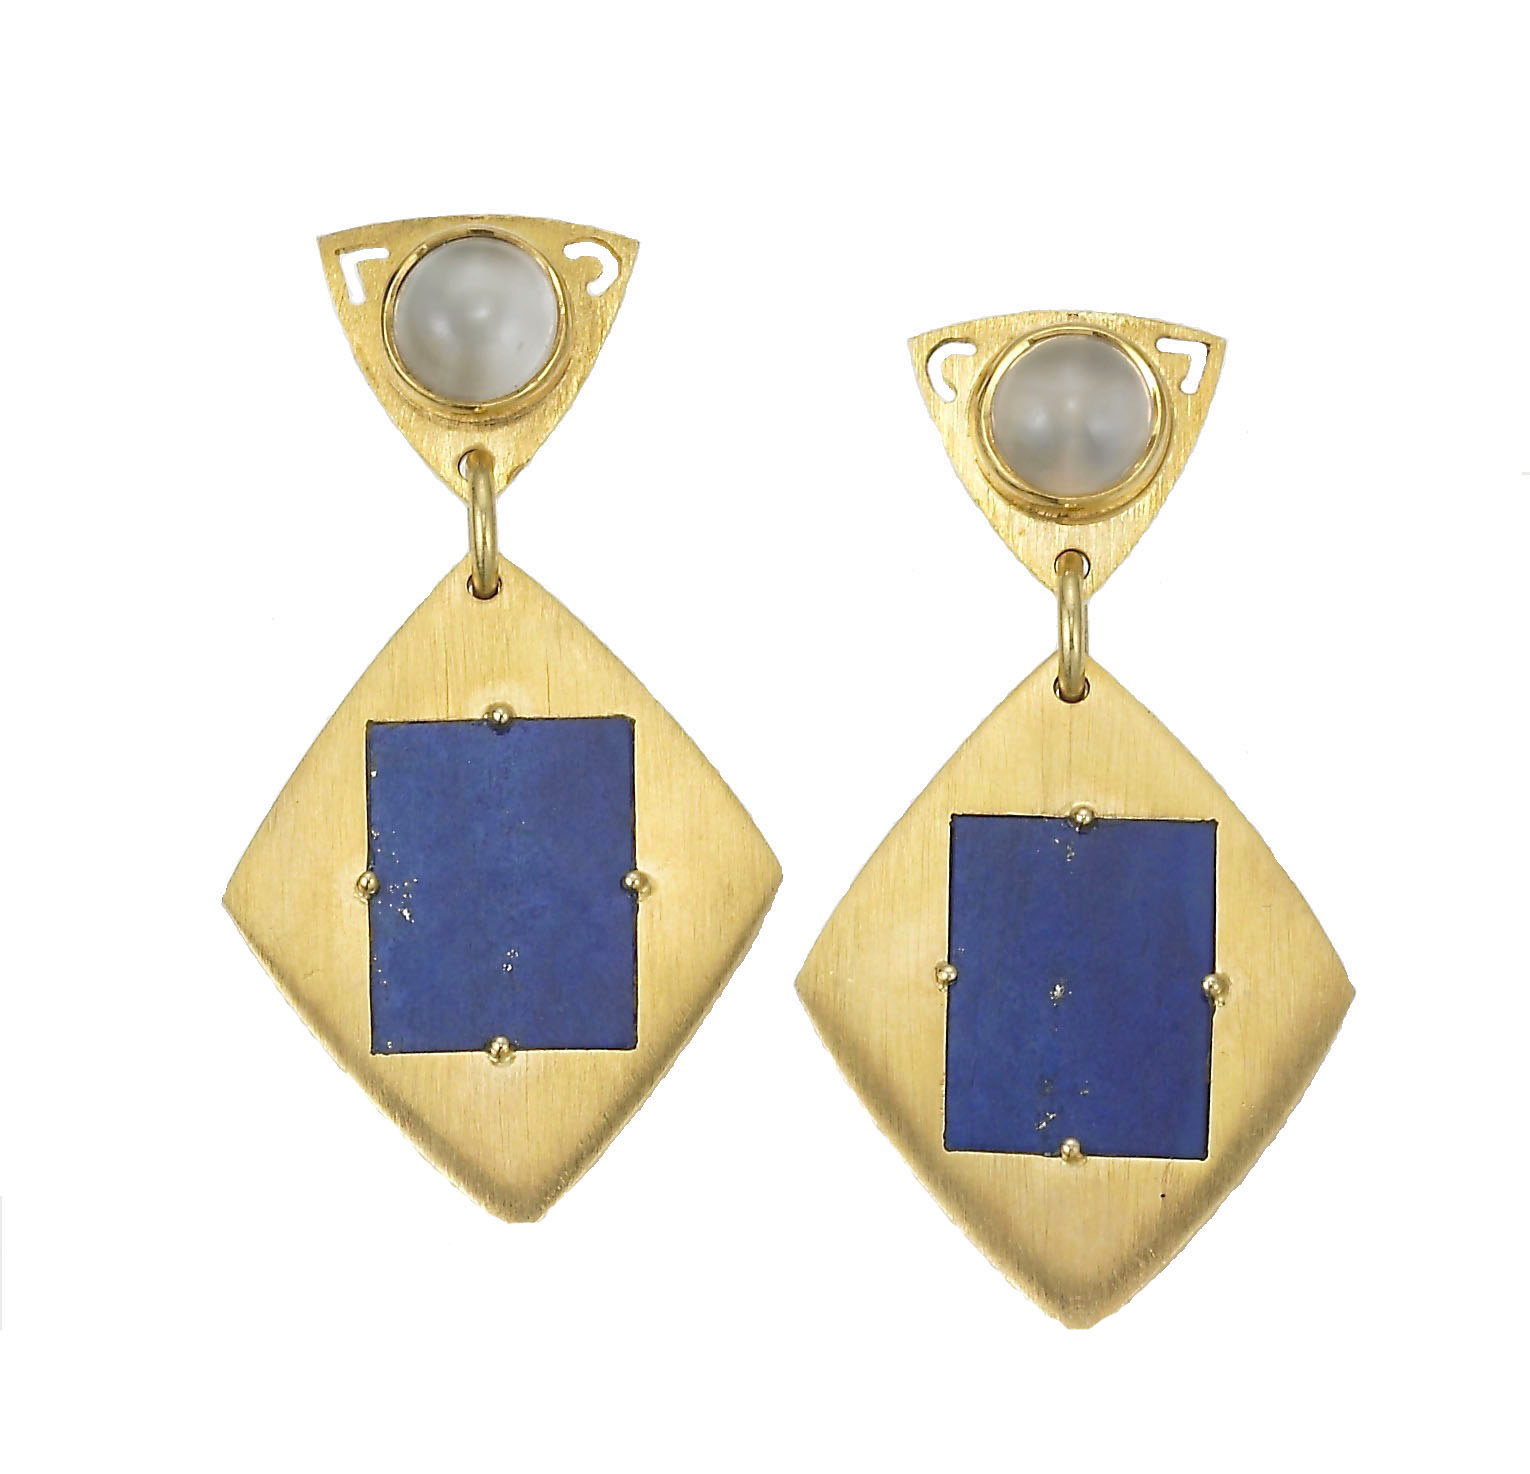 Brushed Yellow Gold and Lapis Lazuli Earrings